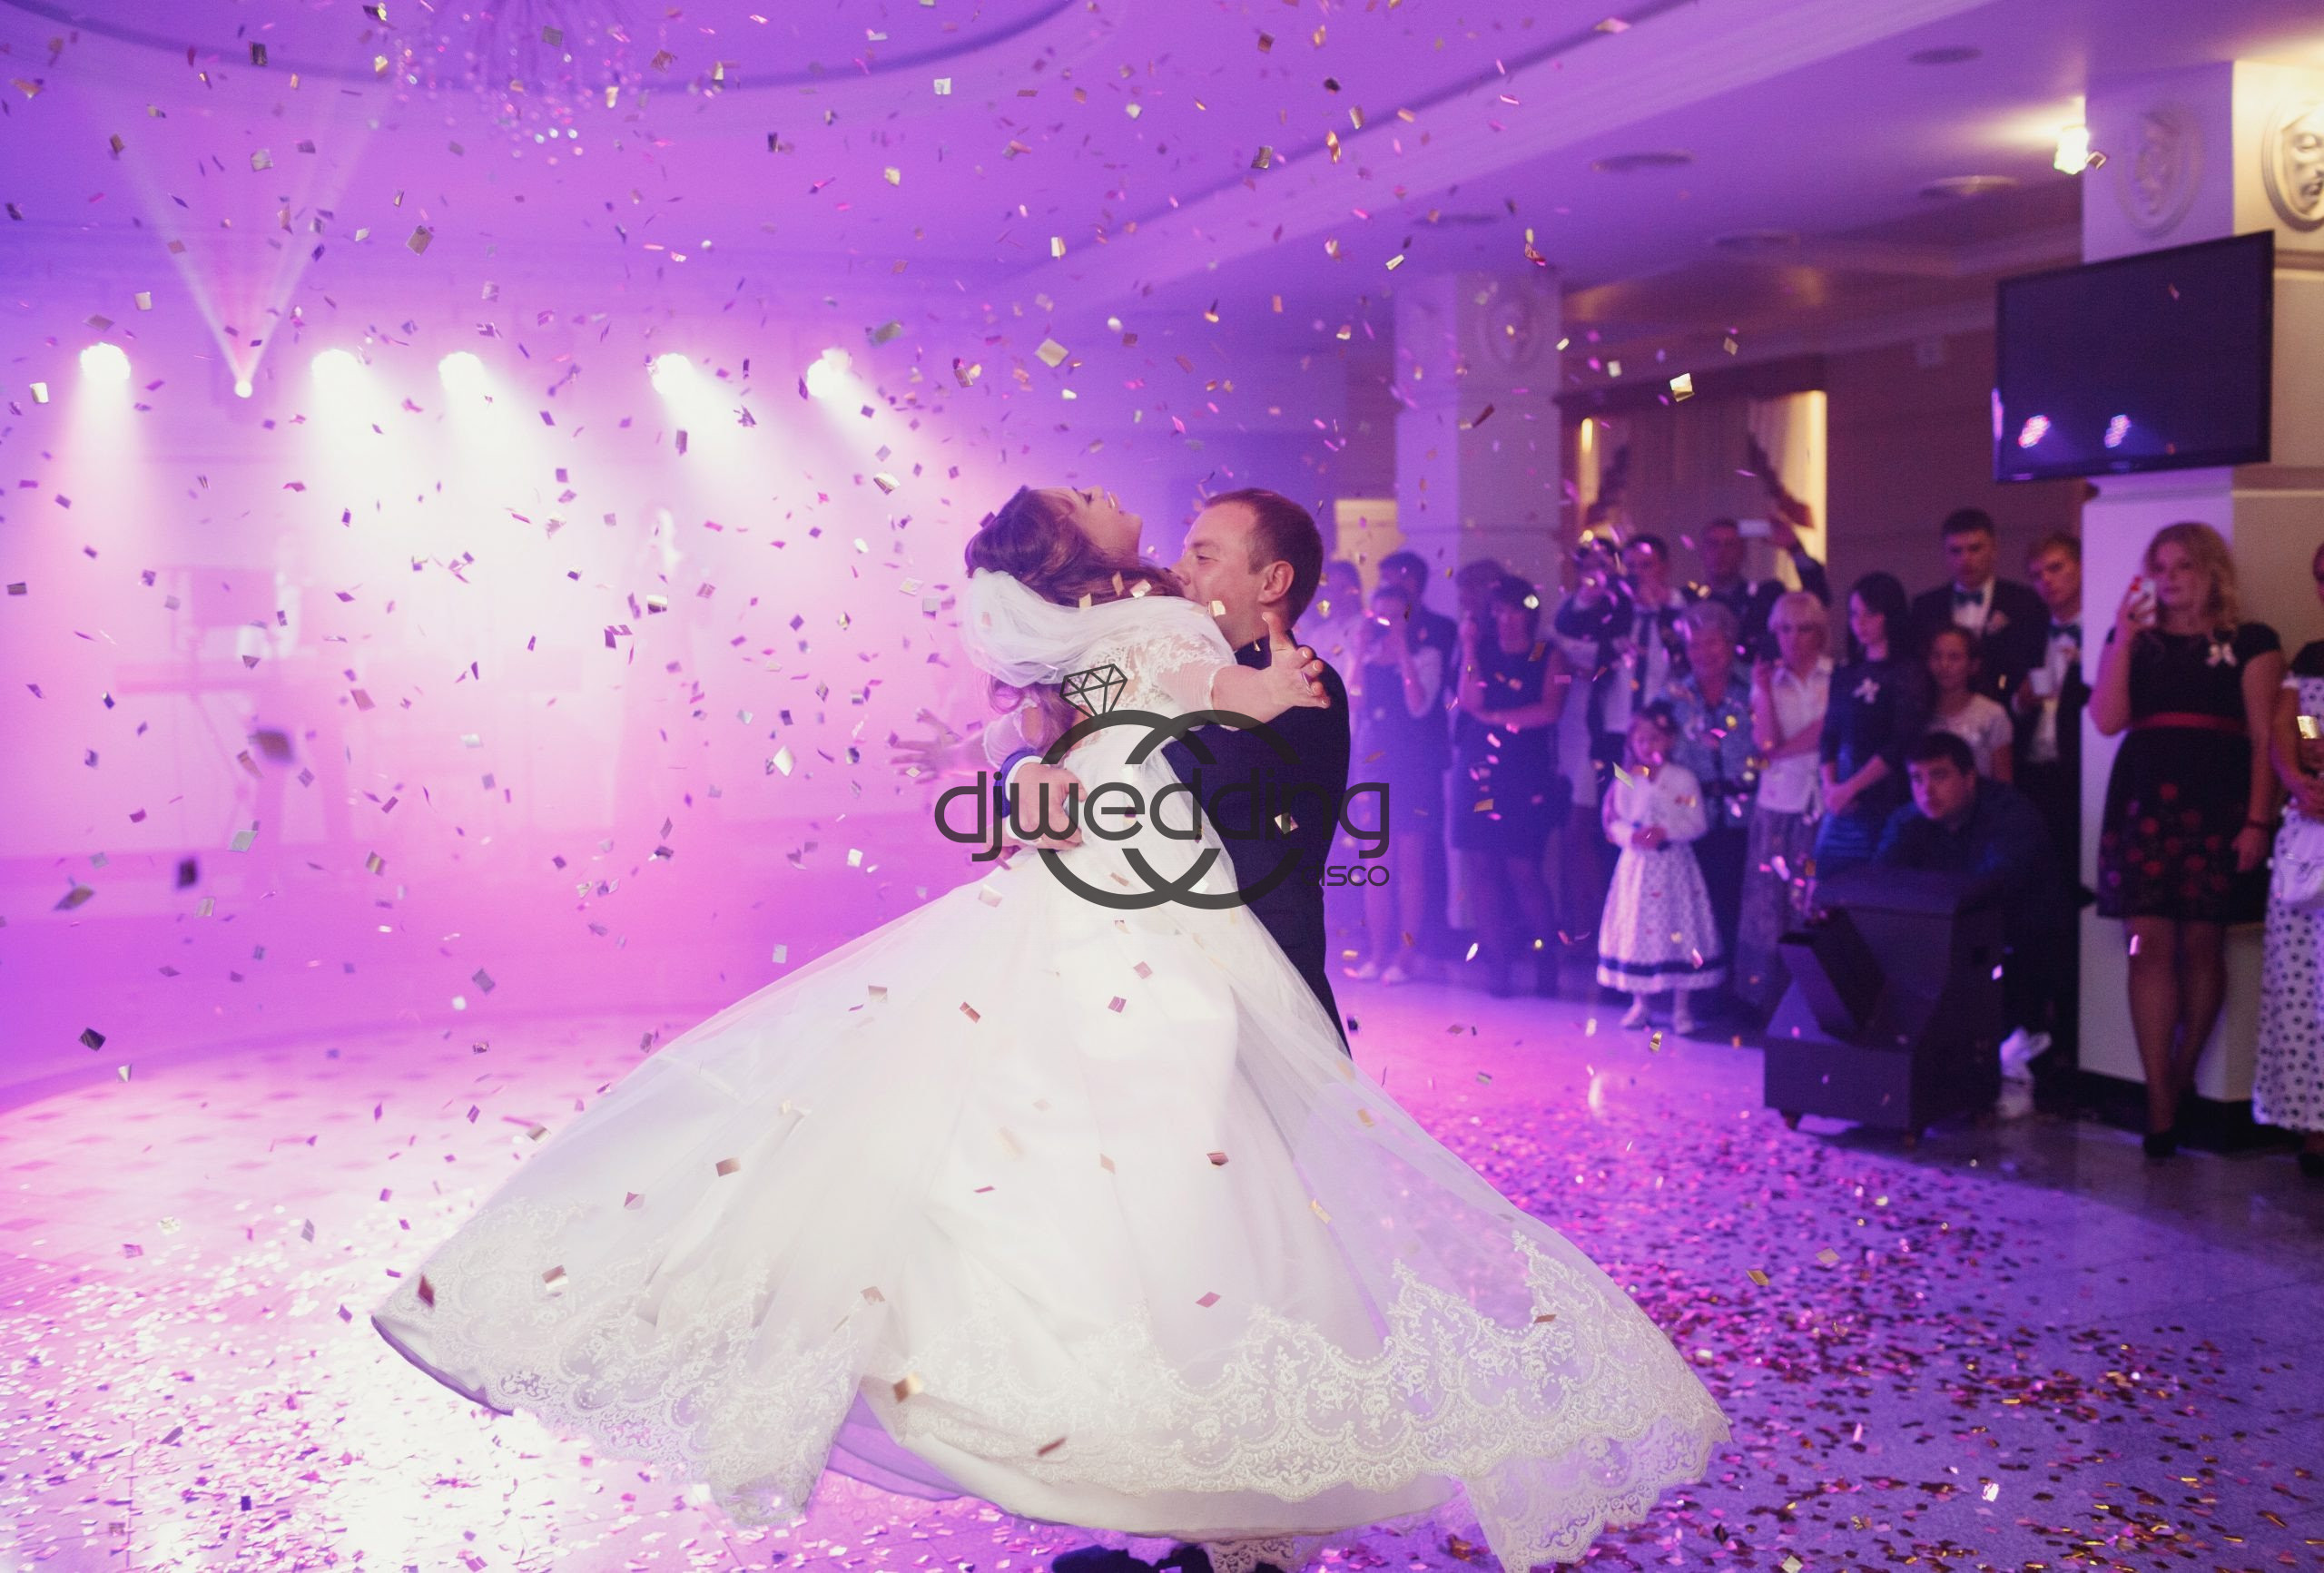 -DJ-Wedding-Disco-Photo-booth-dance-floor-sparks-dry-ice-confetti-love-letter-hire-52